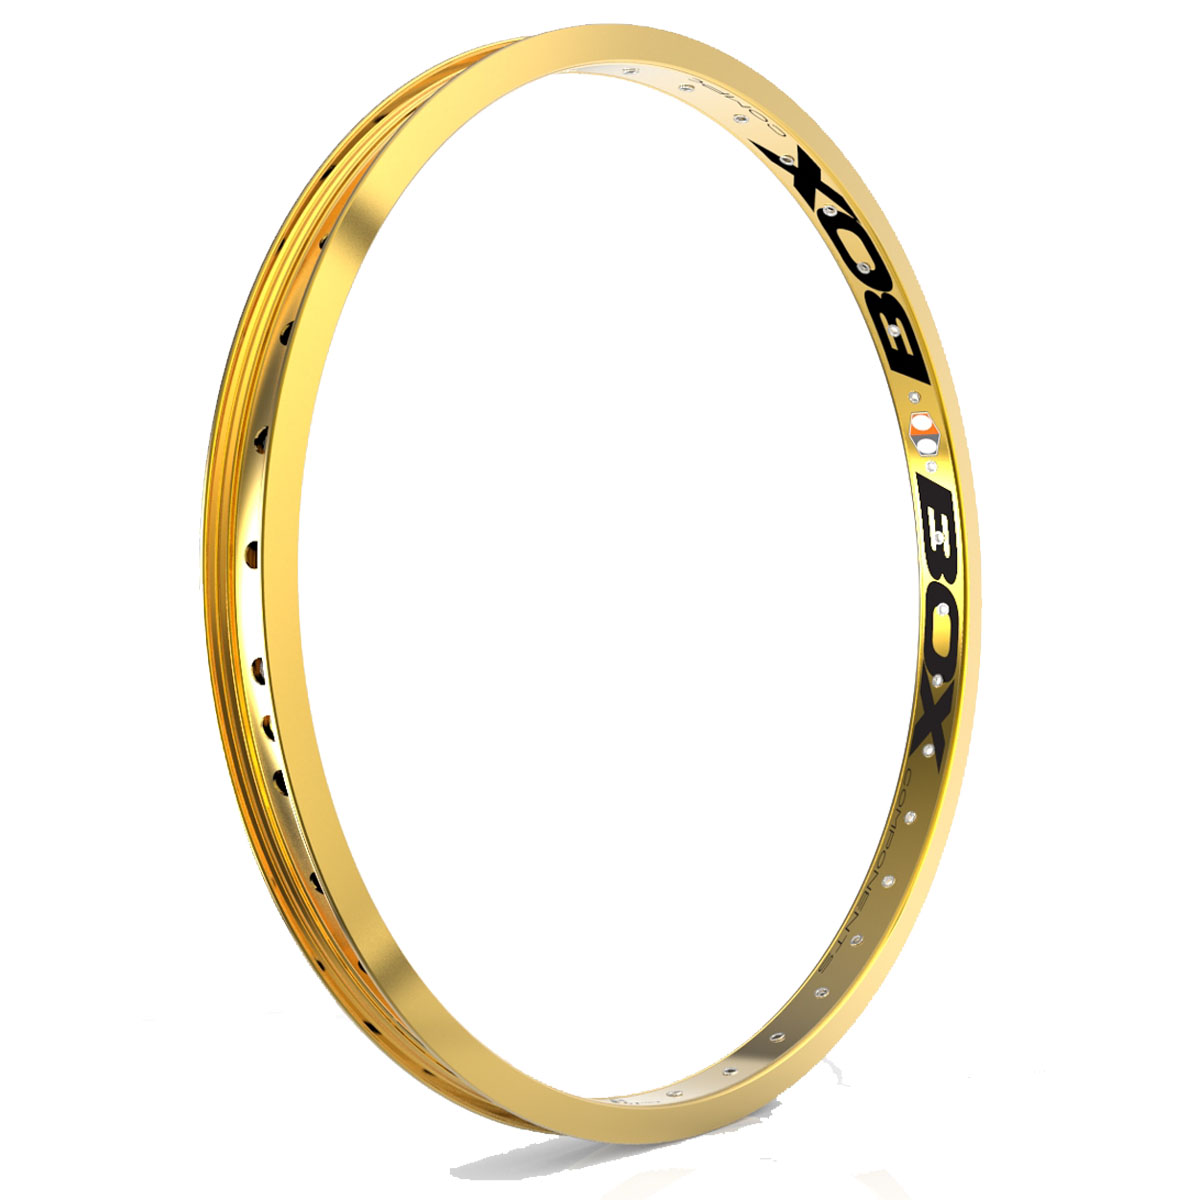 BOX FOCUS 451mm x 12mm 24h RIM GOLD